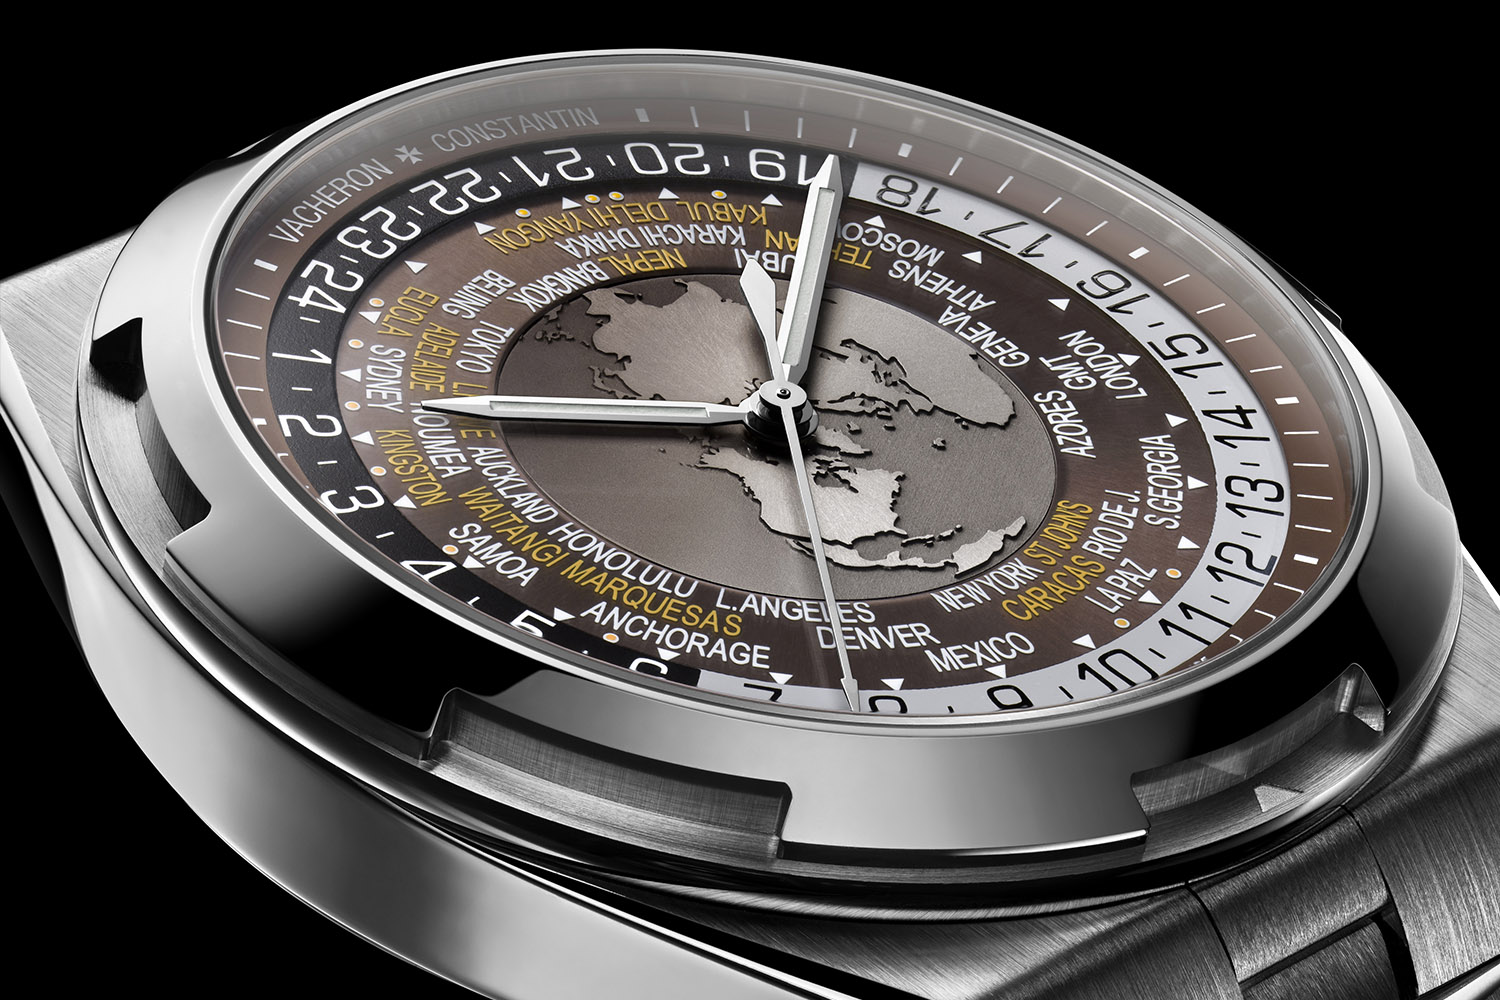 Introducing: Vacheron Constantin Overseas World Time 7700V, the luxury worldtimer sports watch – Specs and Price